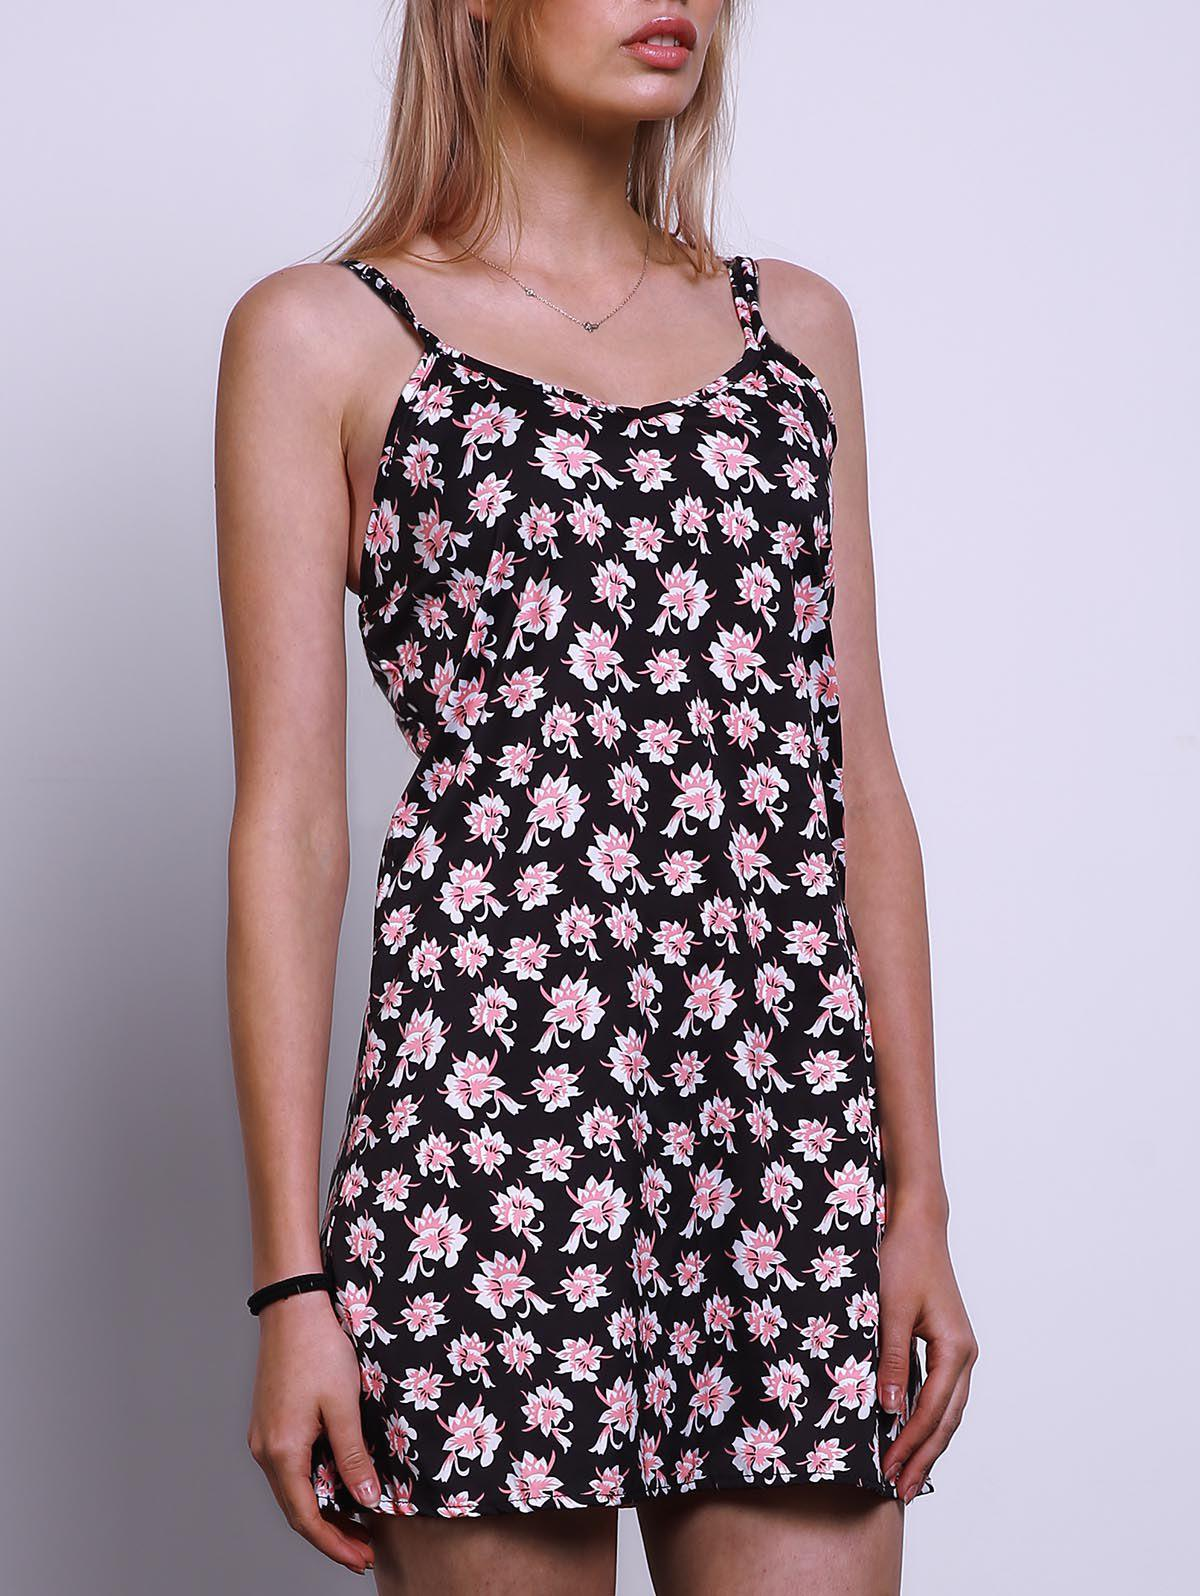 Sexy Women's Spaghetti Strap Flower Print Sundress - COLORMIX S